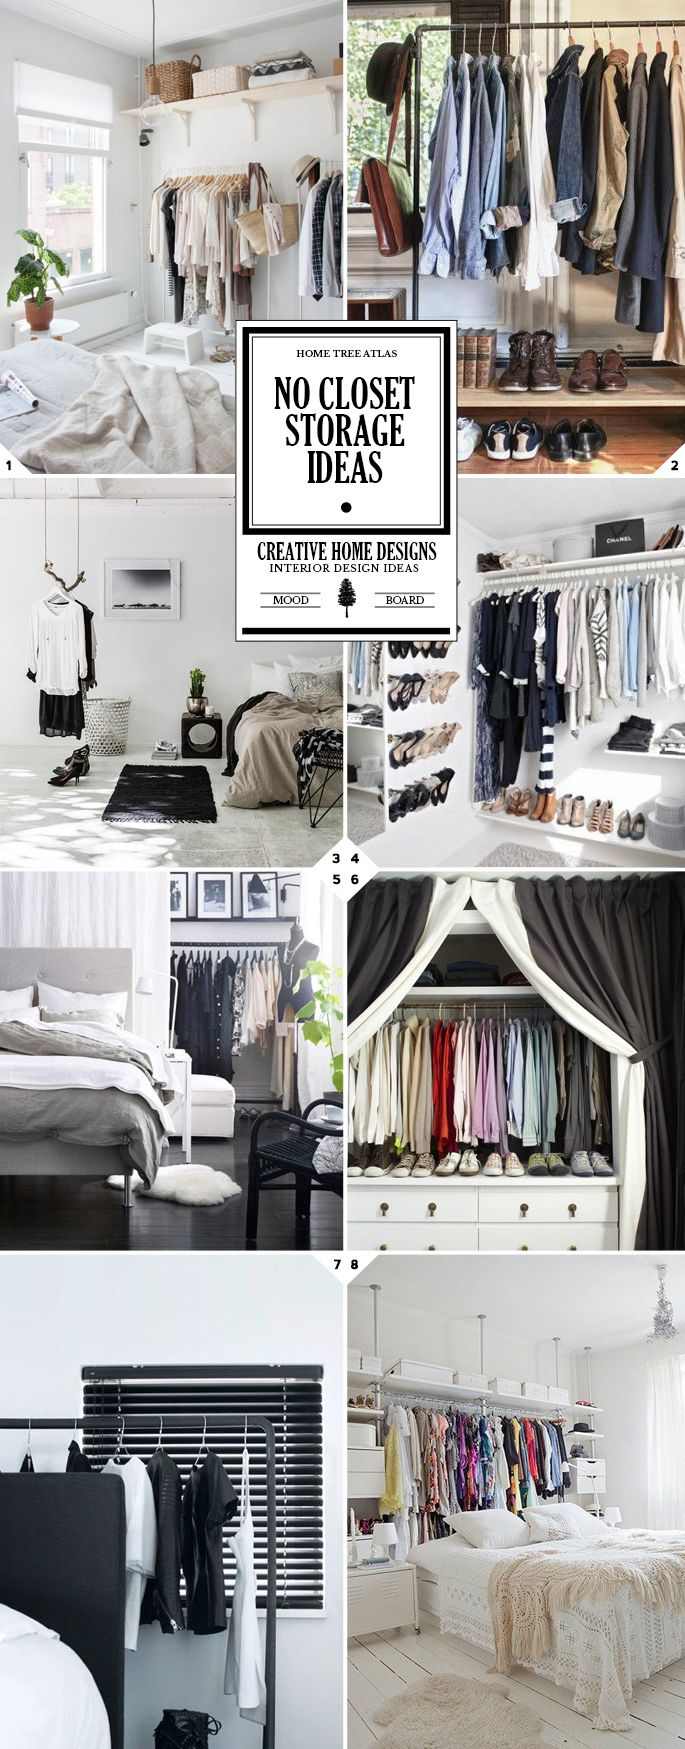 Getting Creative: No Closet Solutions And Storage Ideas